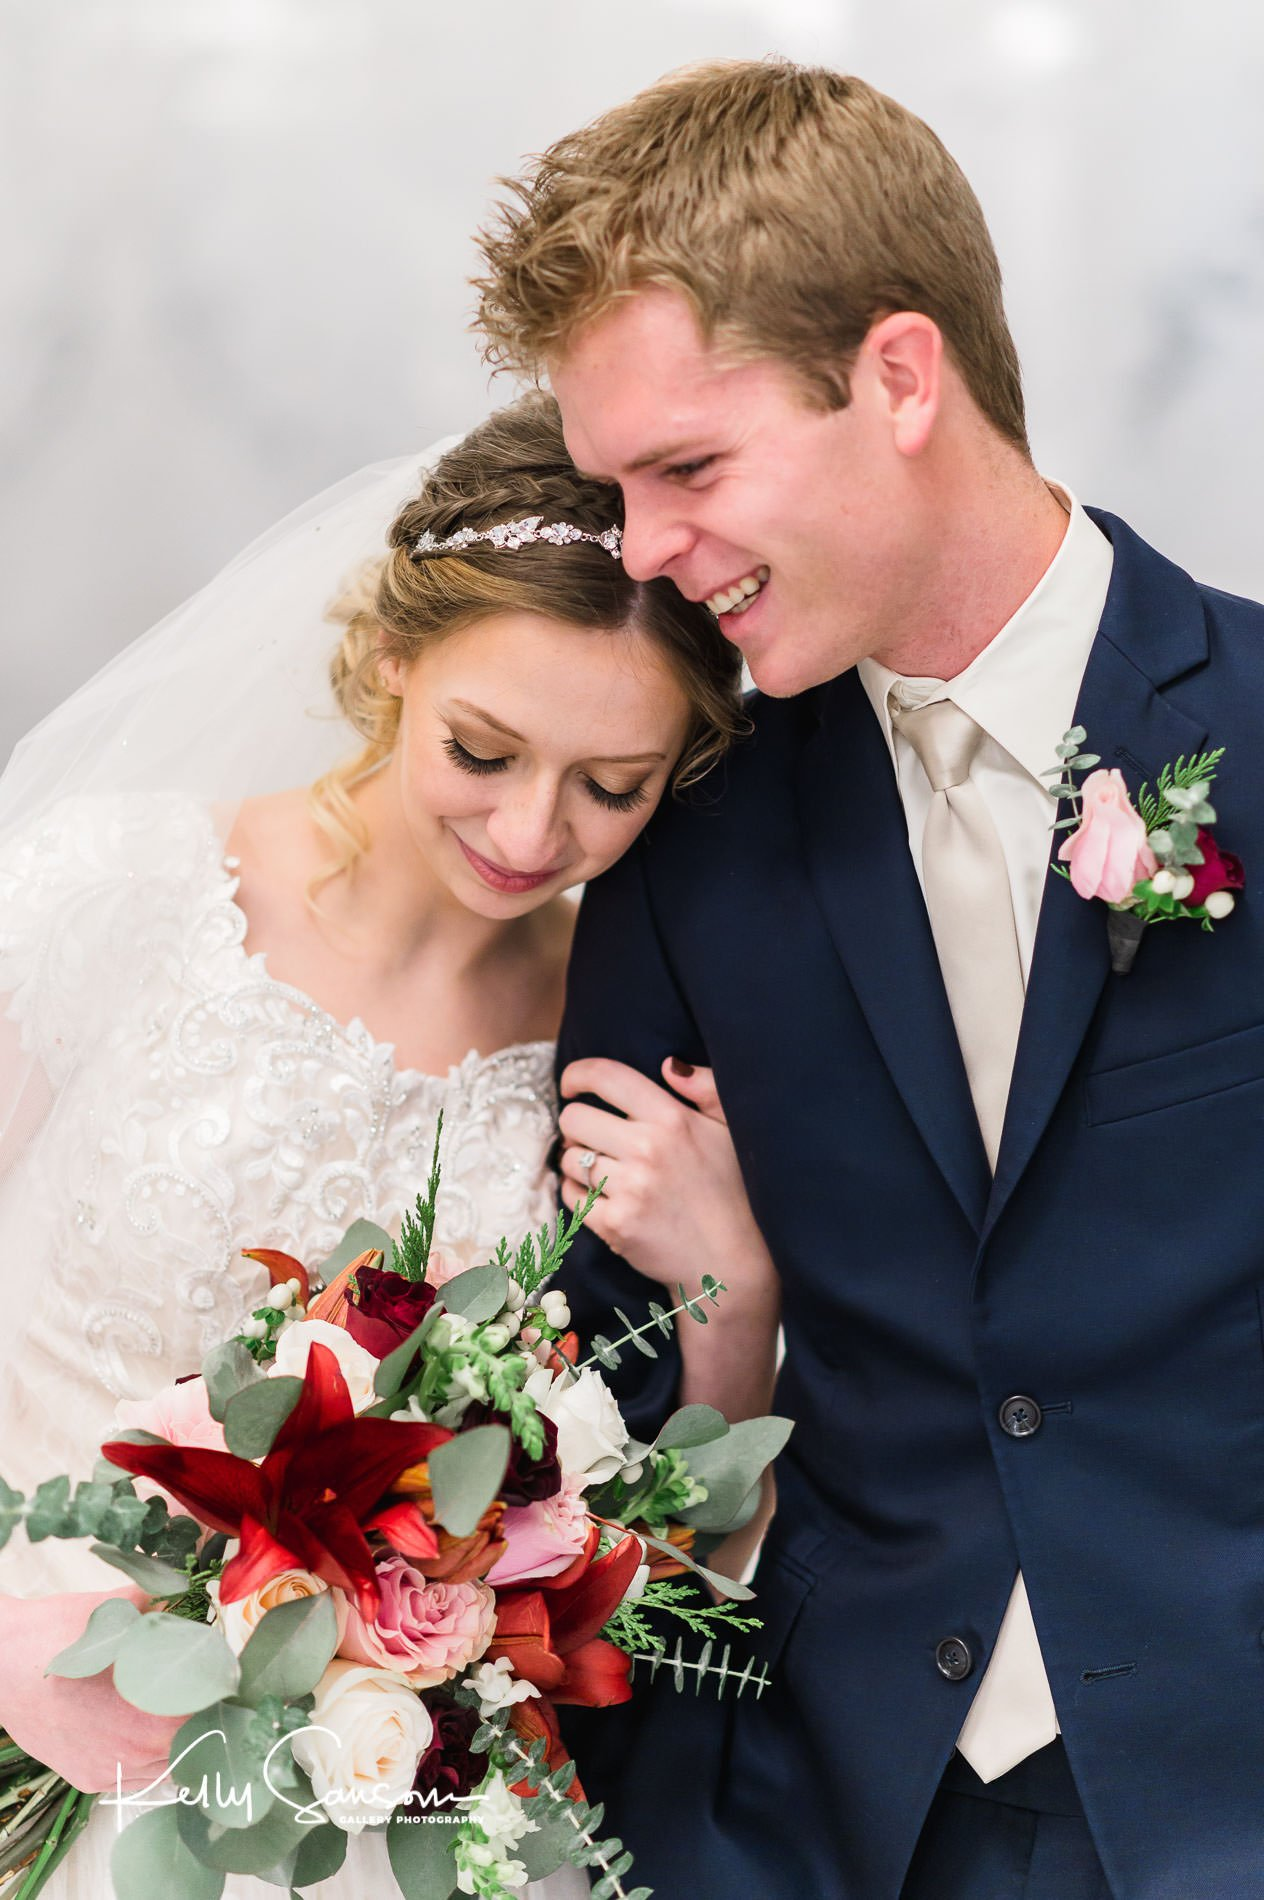 Caroline and Nick Bride and Groom Photography at the Utah State Capitol